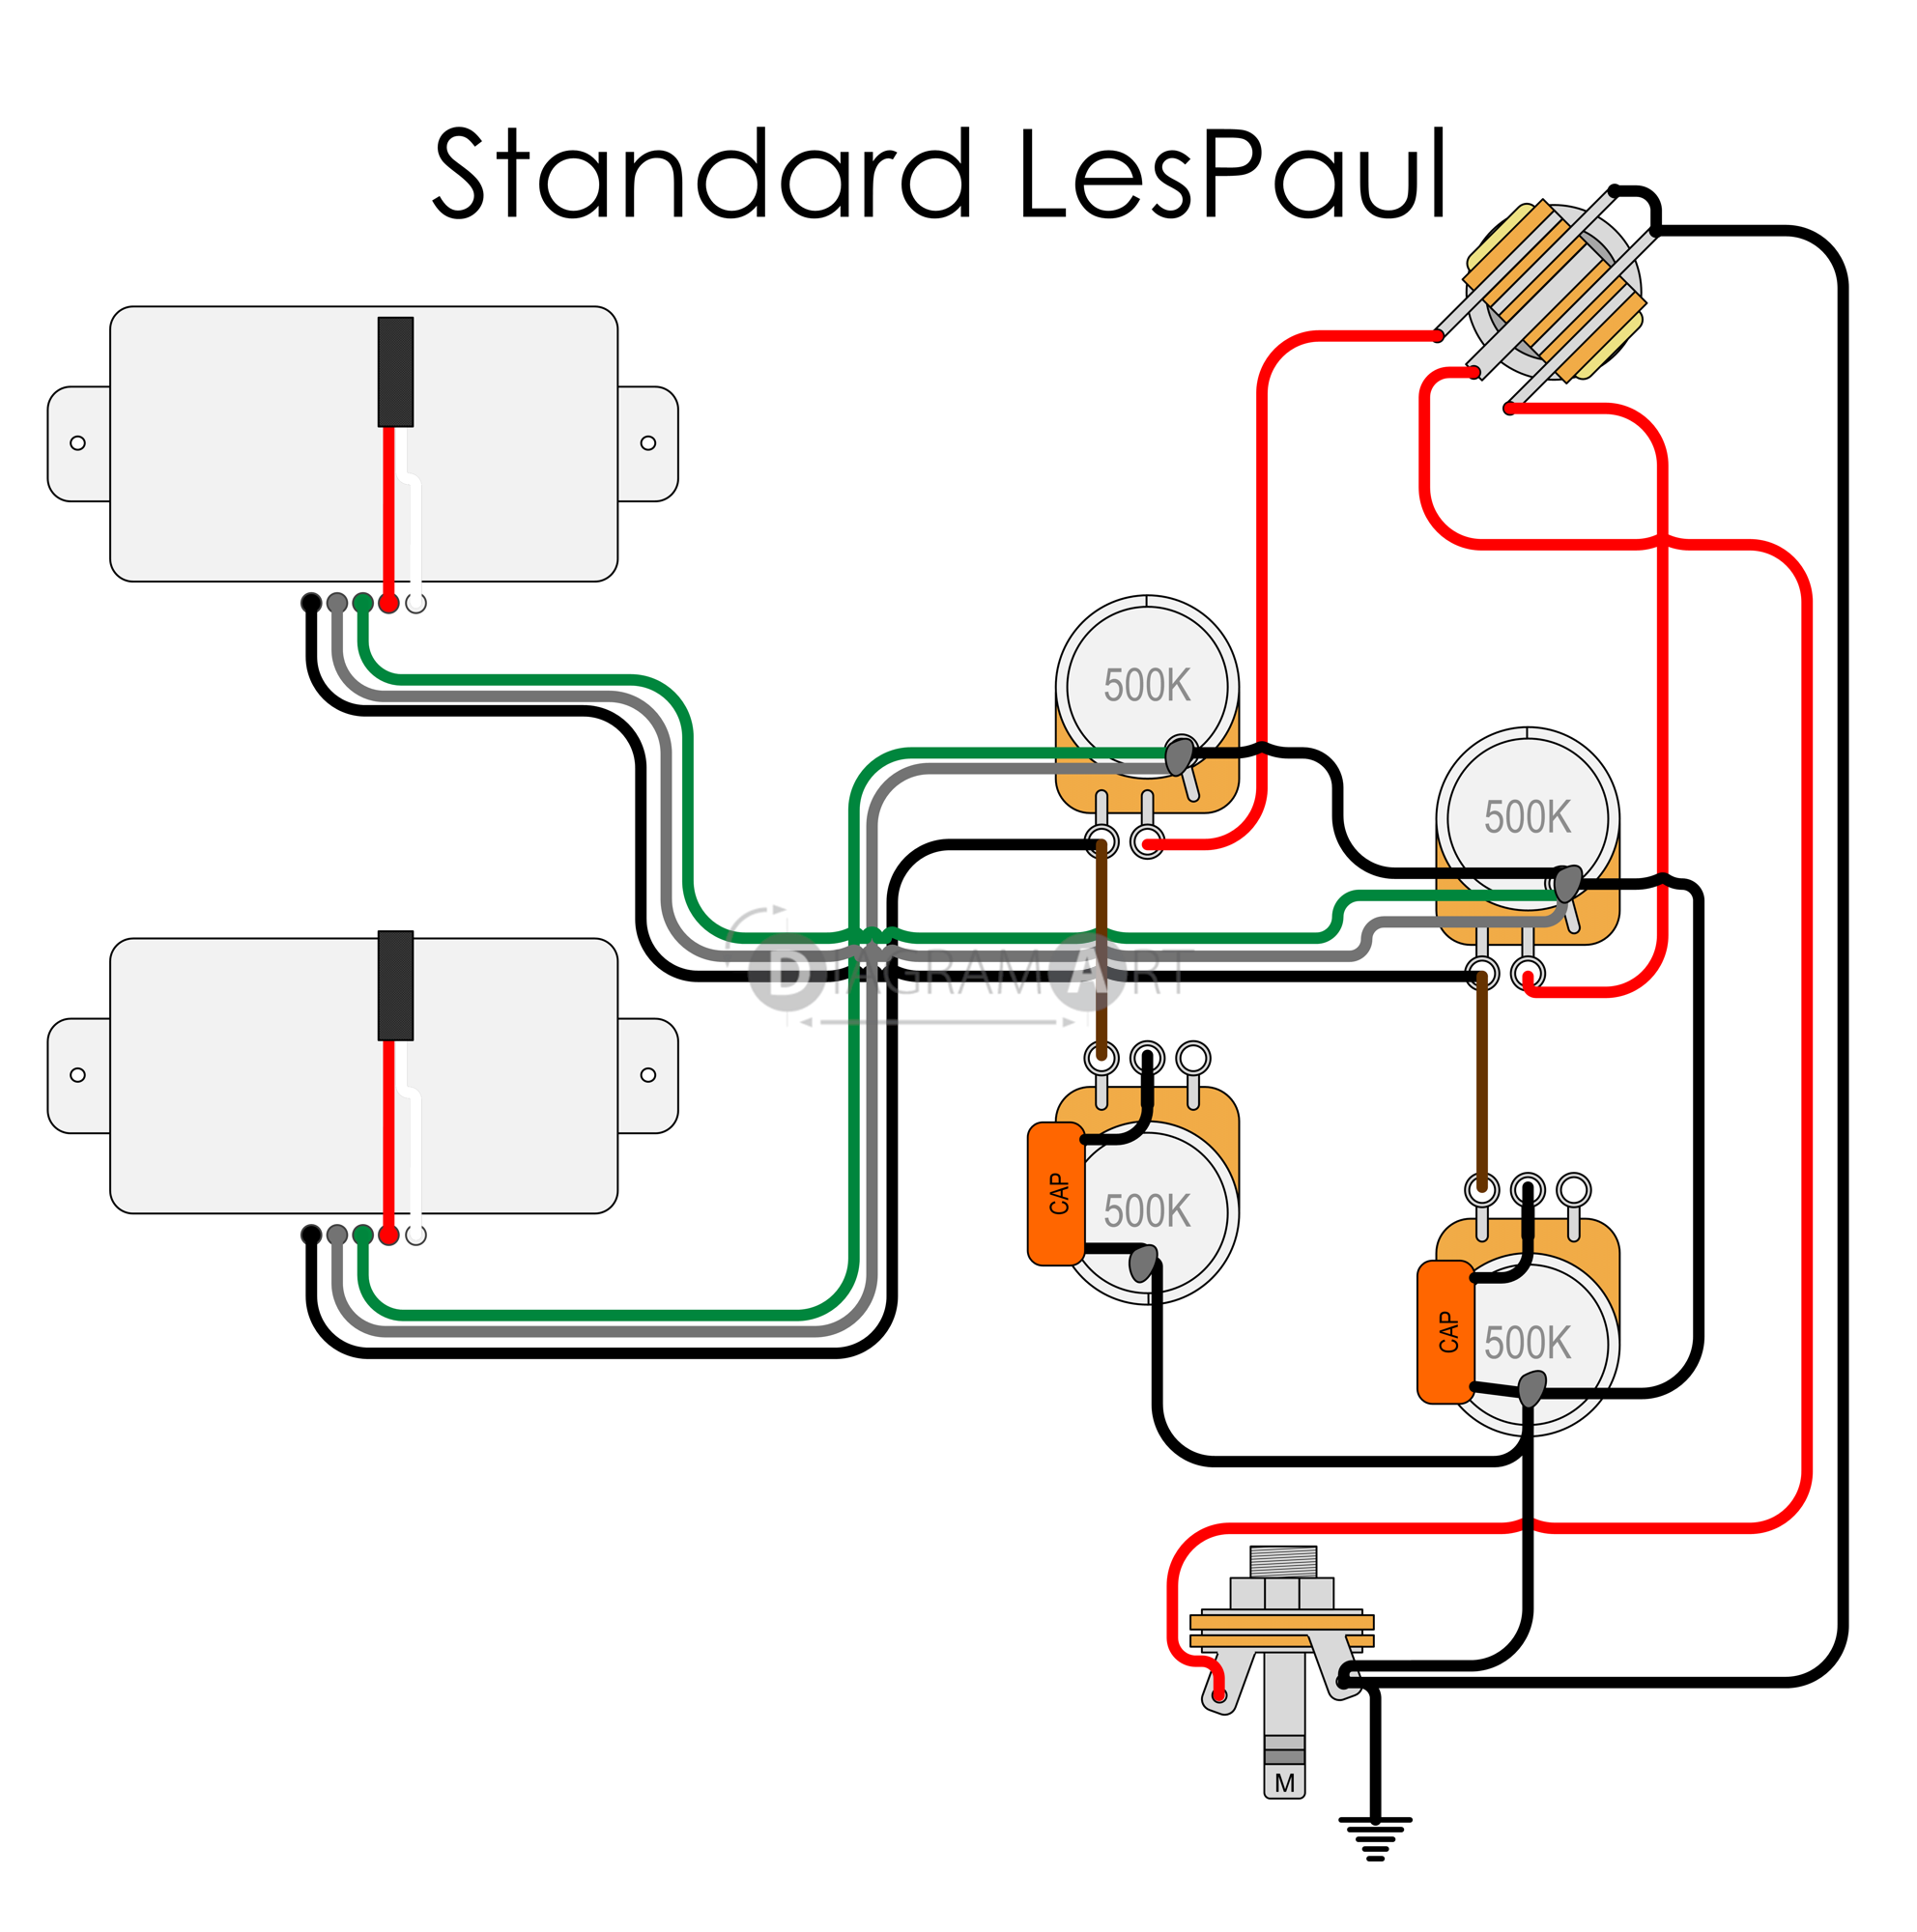 electric guitar wiring standard lespaul [electric circuit] diagramart dorman wiring diagram electric guitar wiring standard lespaul [electric circuit] , free sketch diagramart author